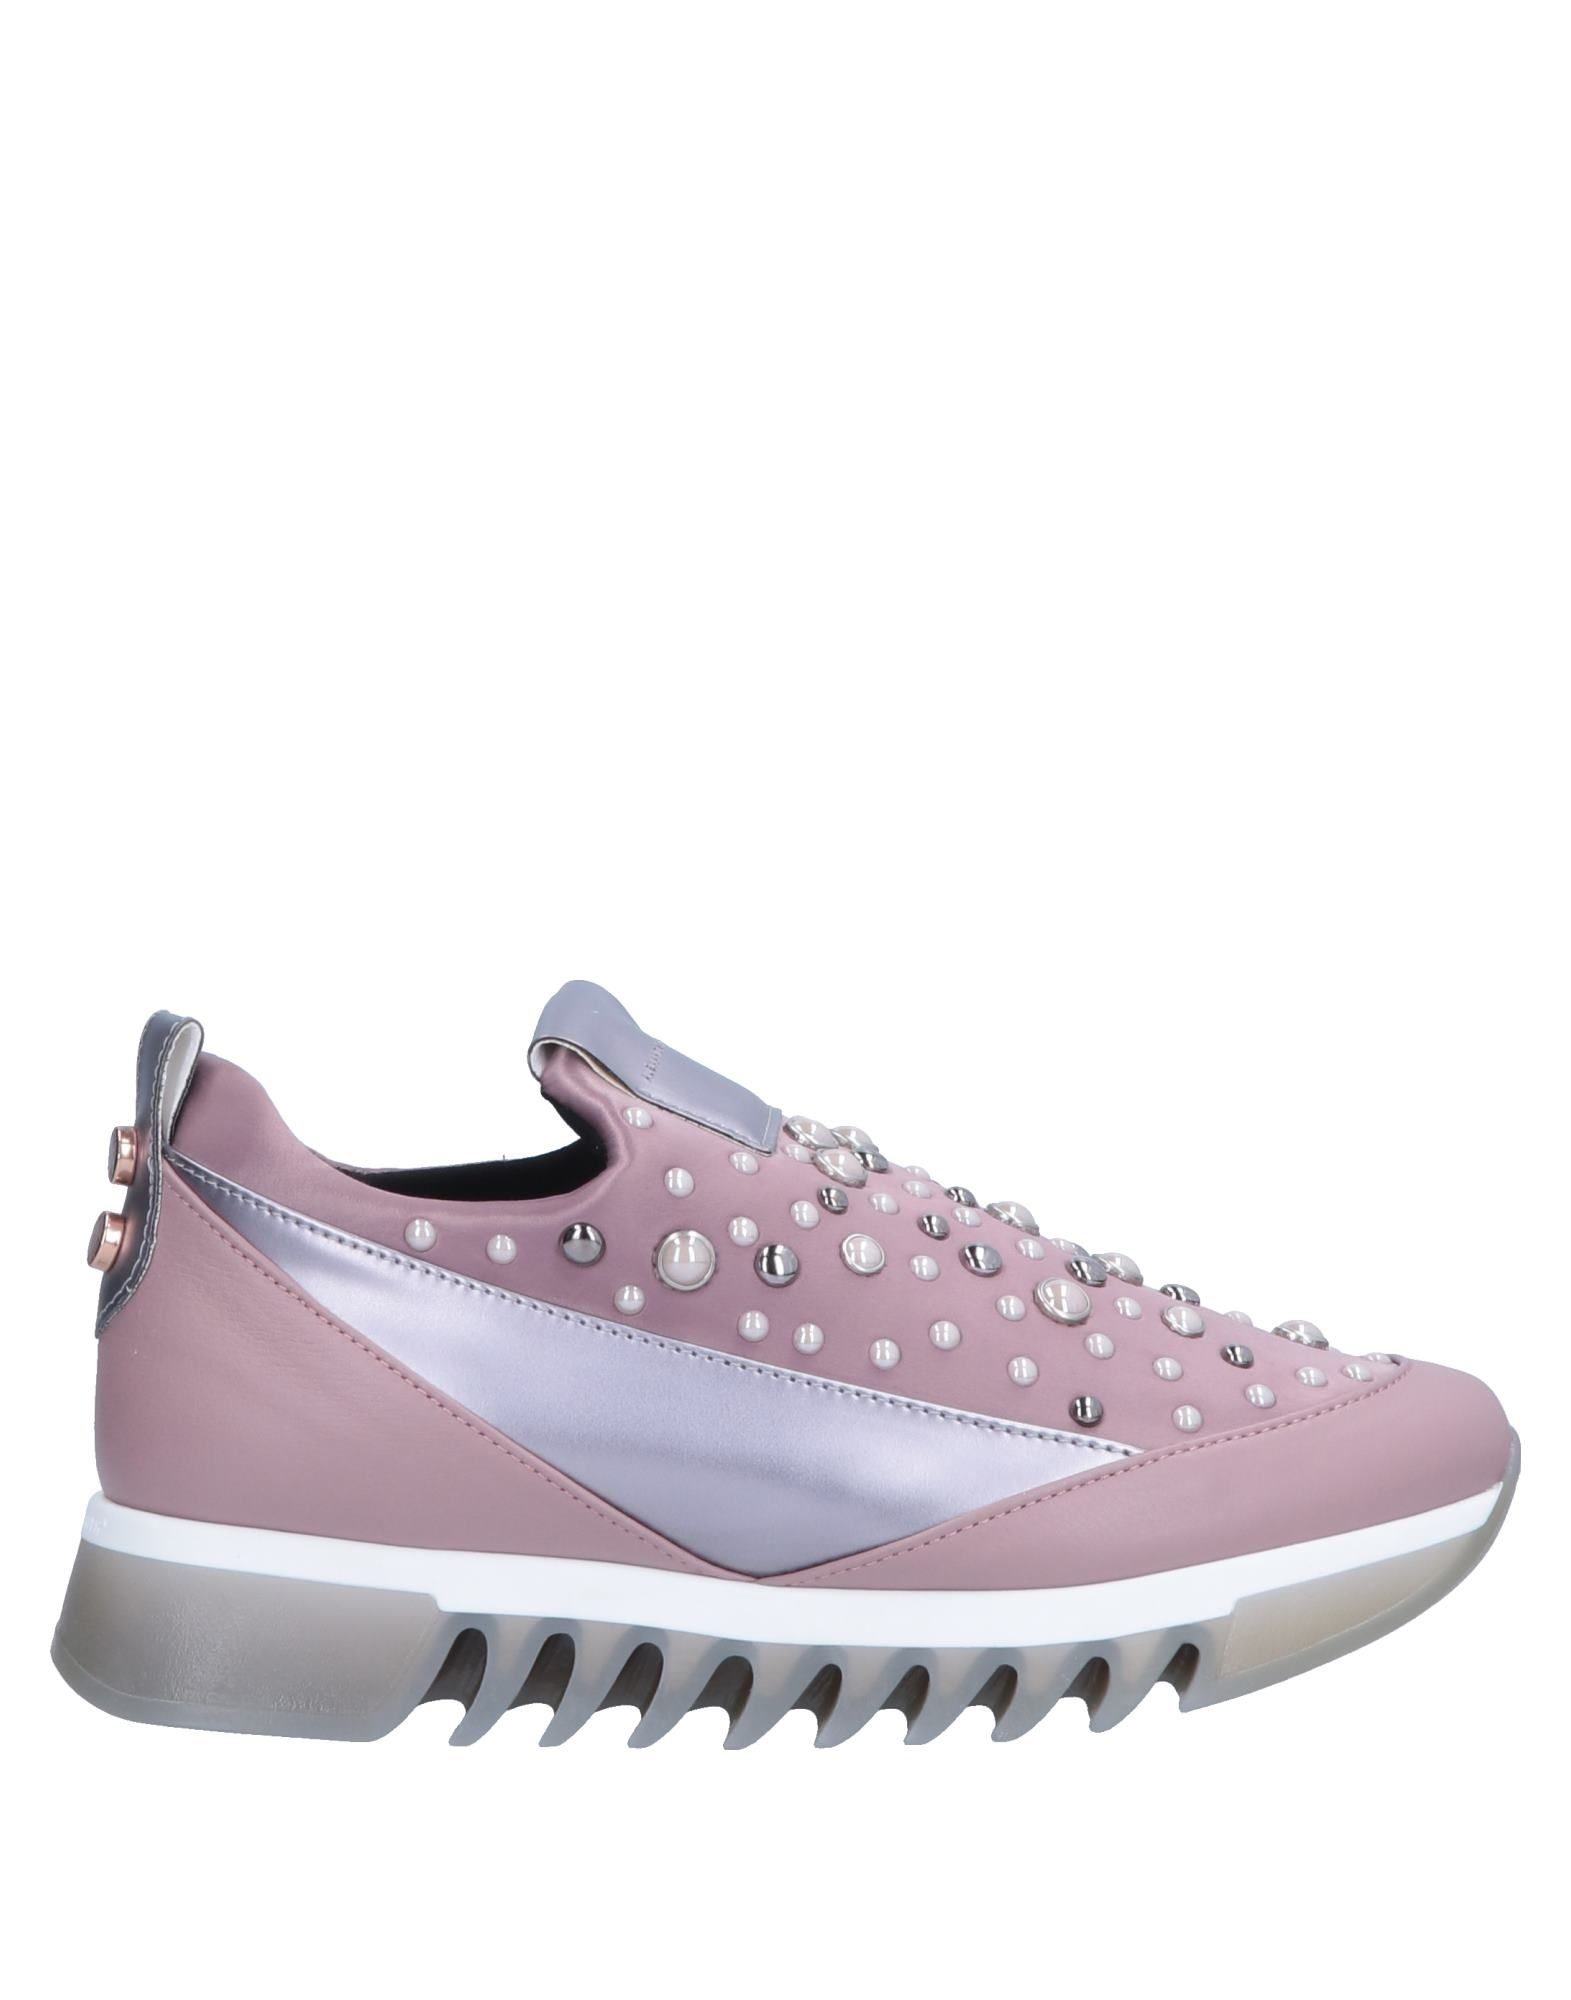 Alexander Smith Sneakers - Women Alexander  Smith Sneakers online on  Alexander Canada - 11565505WU 6f3603